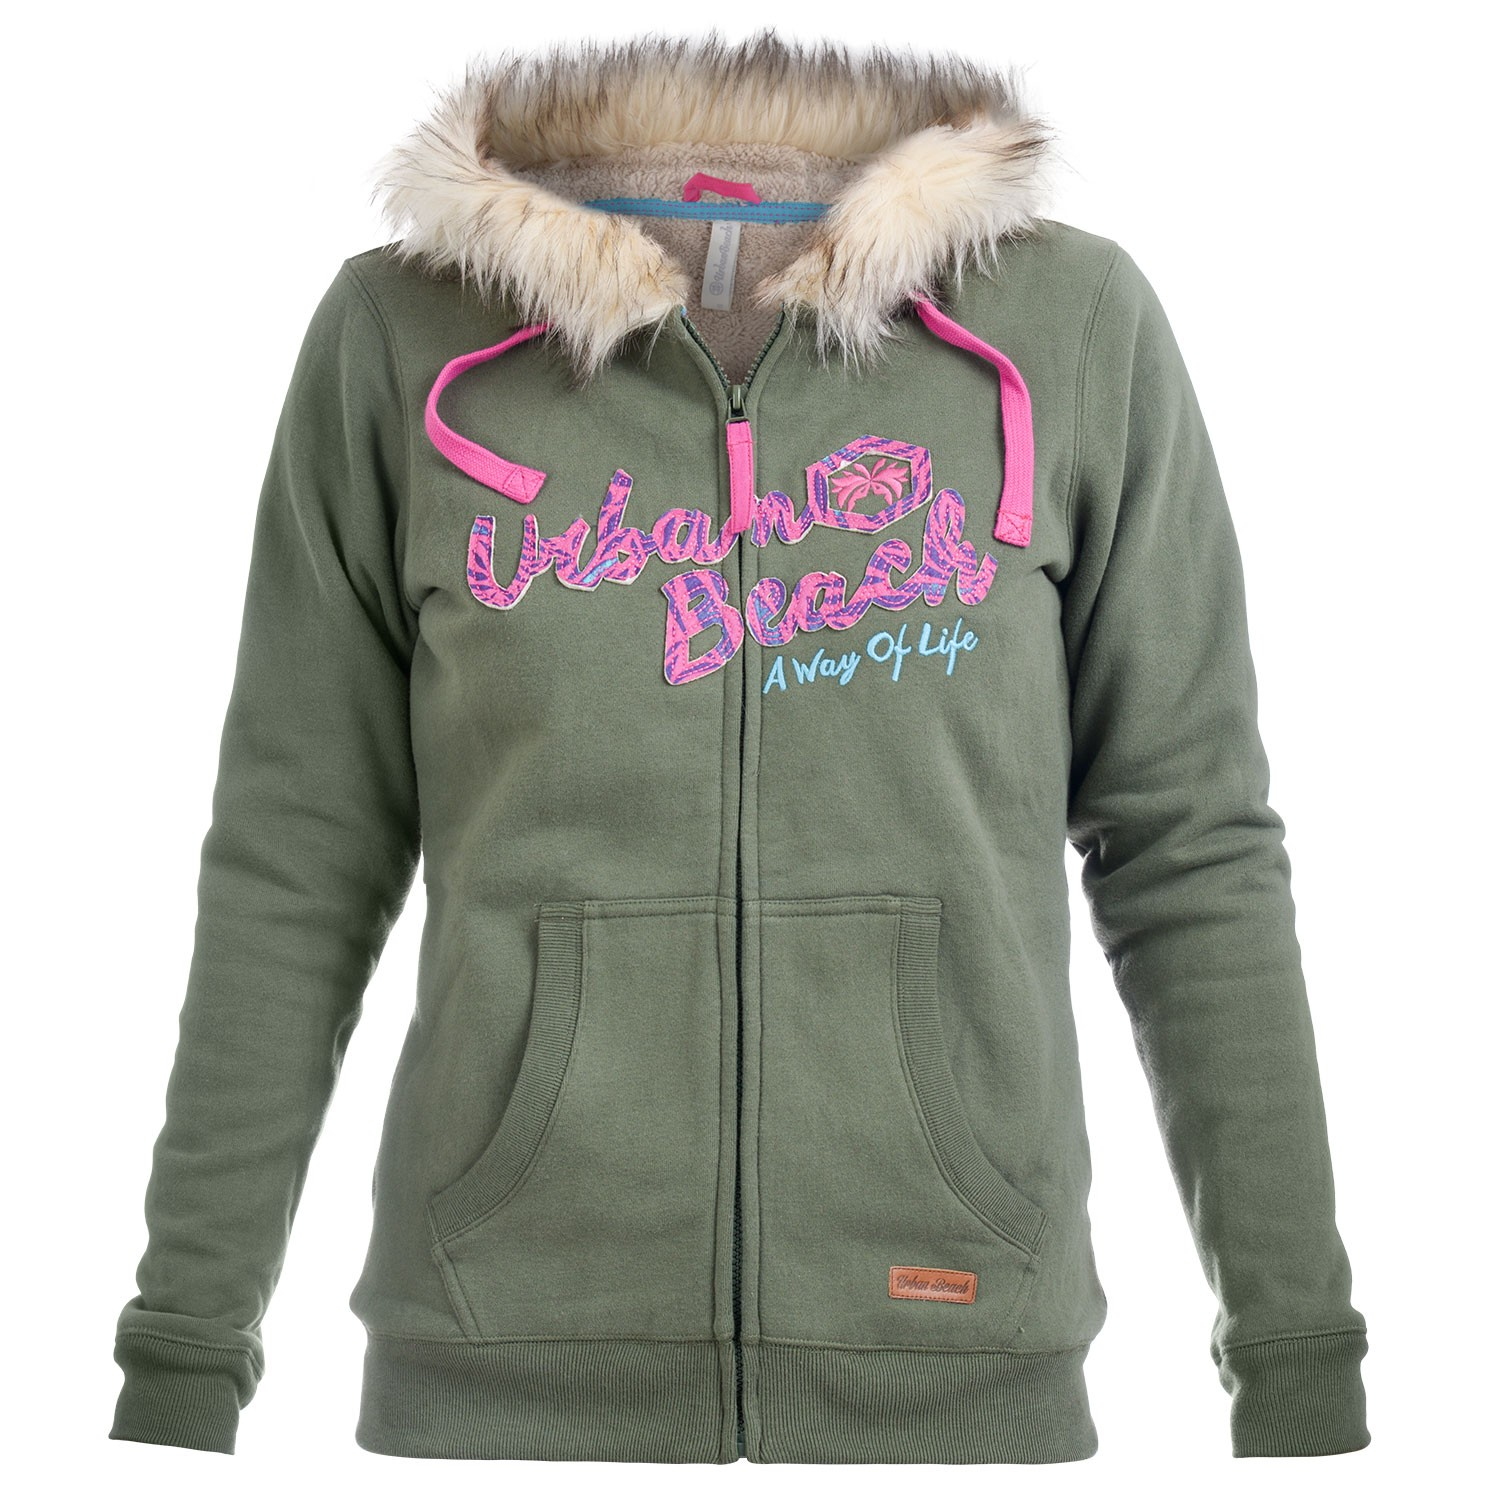 1c6cbea3 Womens Khaki Fur Lined Zip Up Hoodie Isabel- Free Delivery Over £20 - Urban  Beach